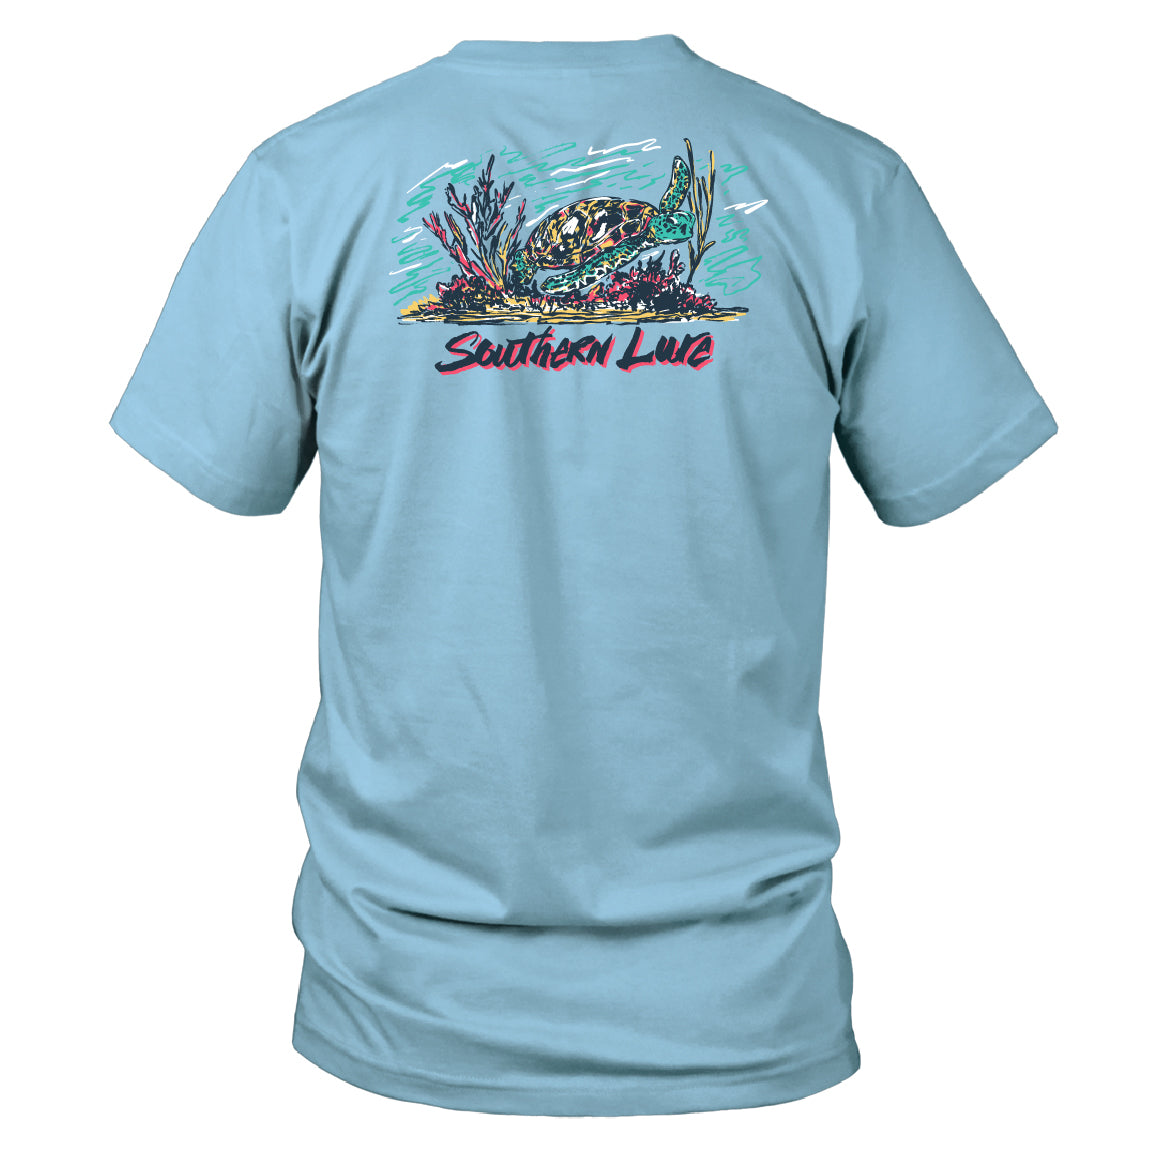 Men's Short Sleeve Cotton Tee - Sea Turtle - Sky Blue